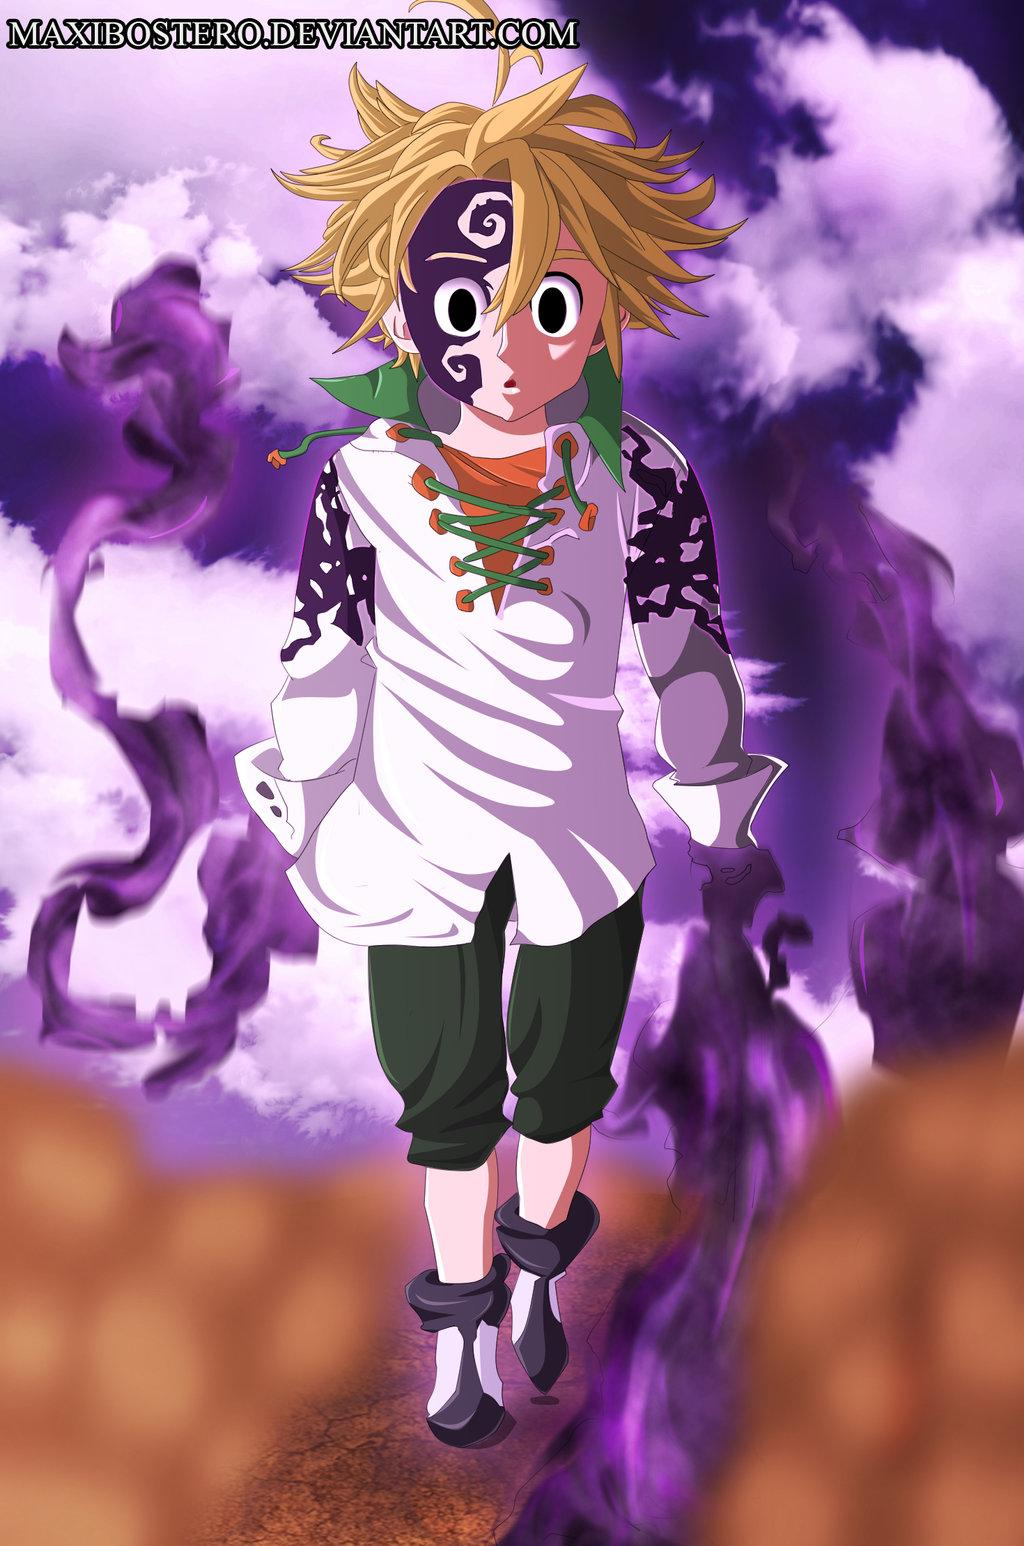 98+] Meliodas Nanatsu No Taizai Wallpapers